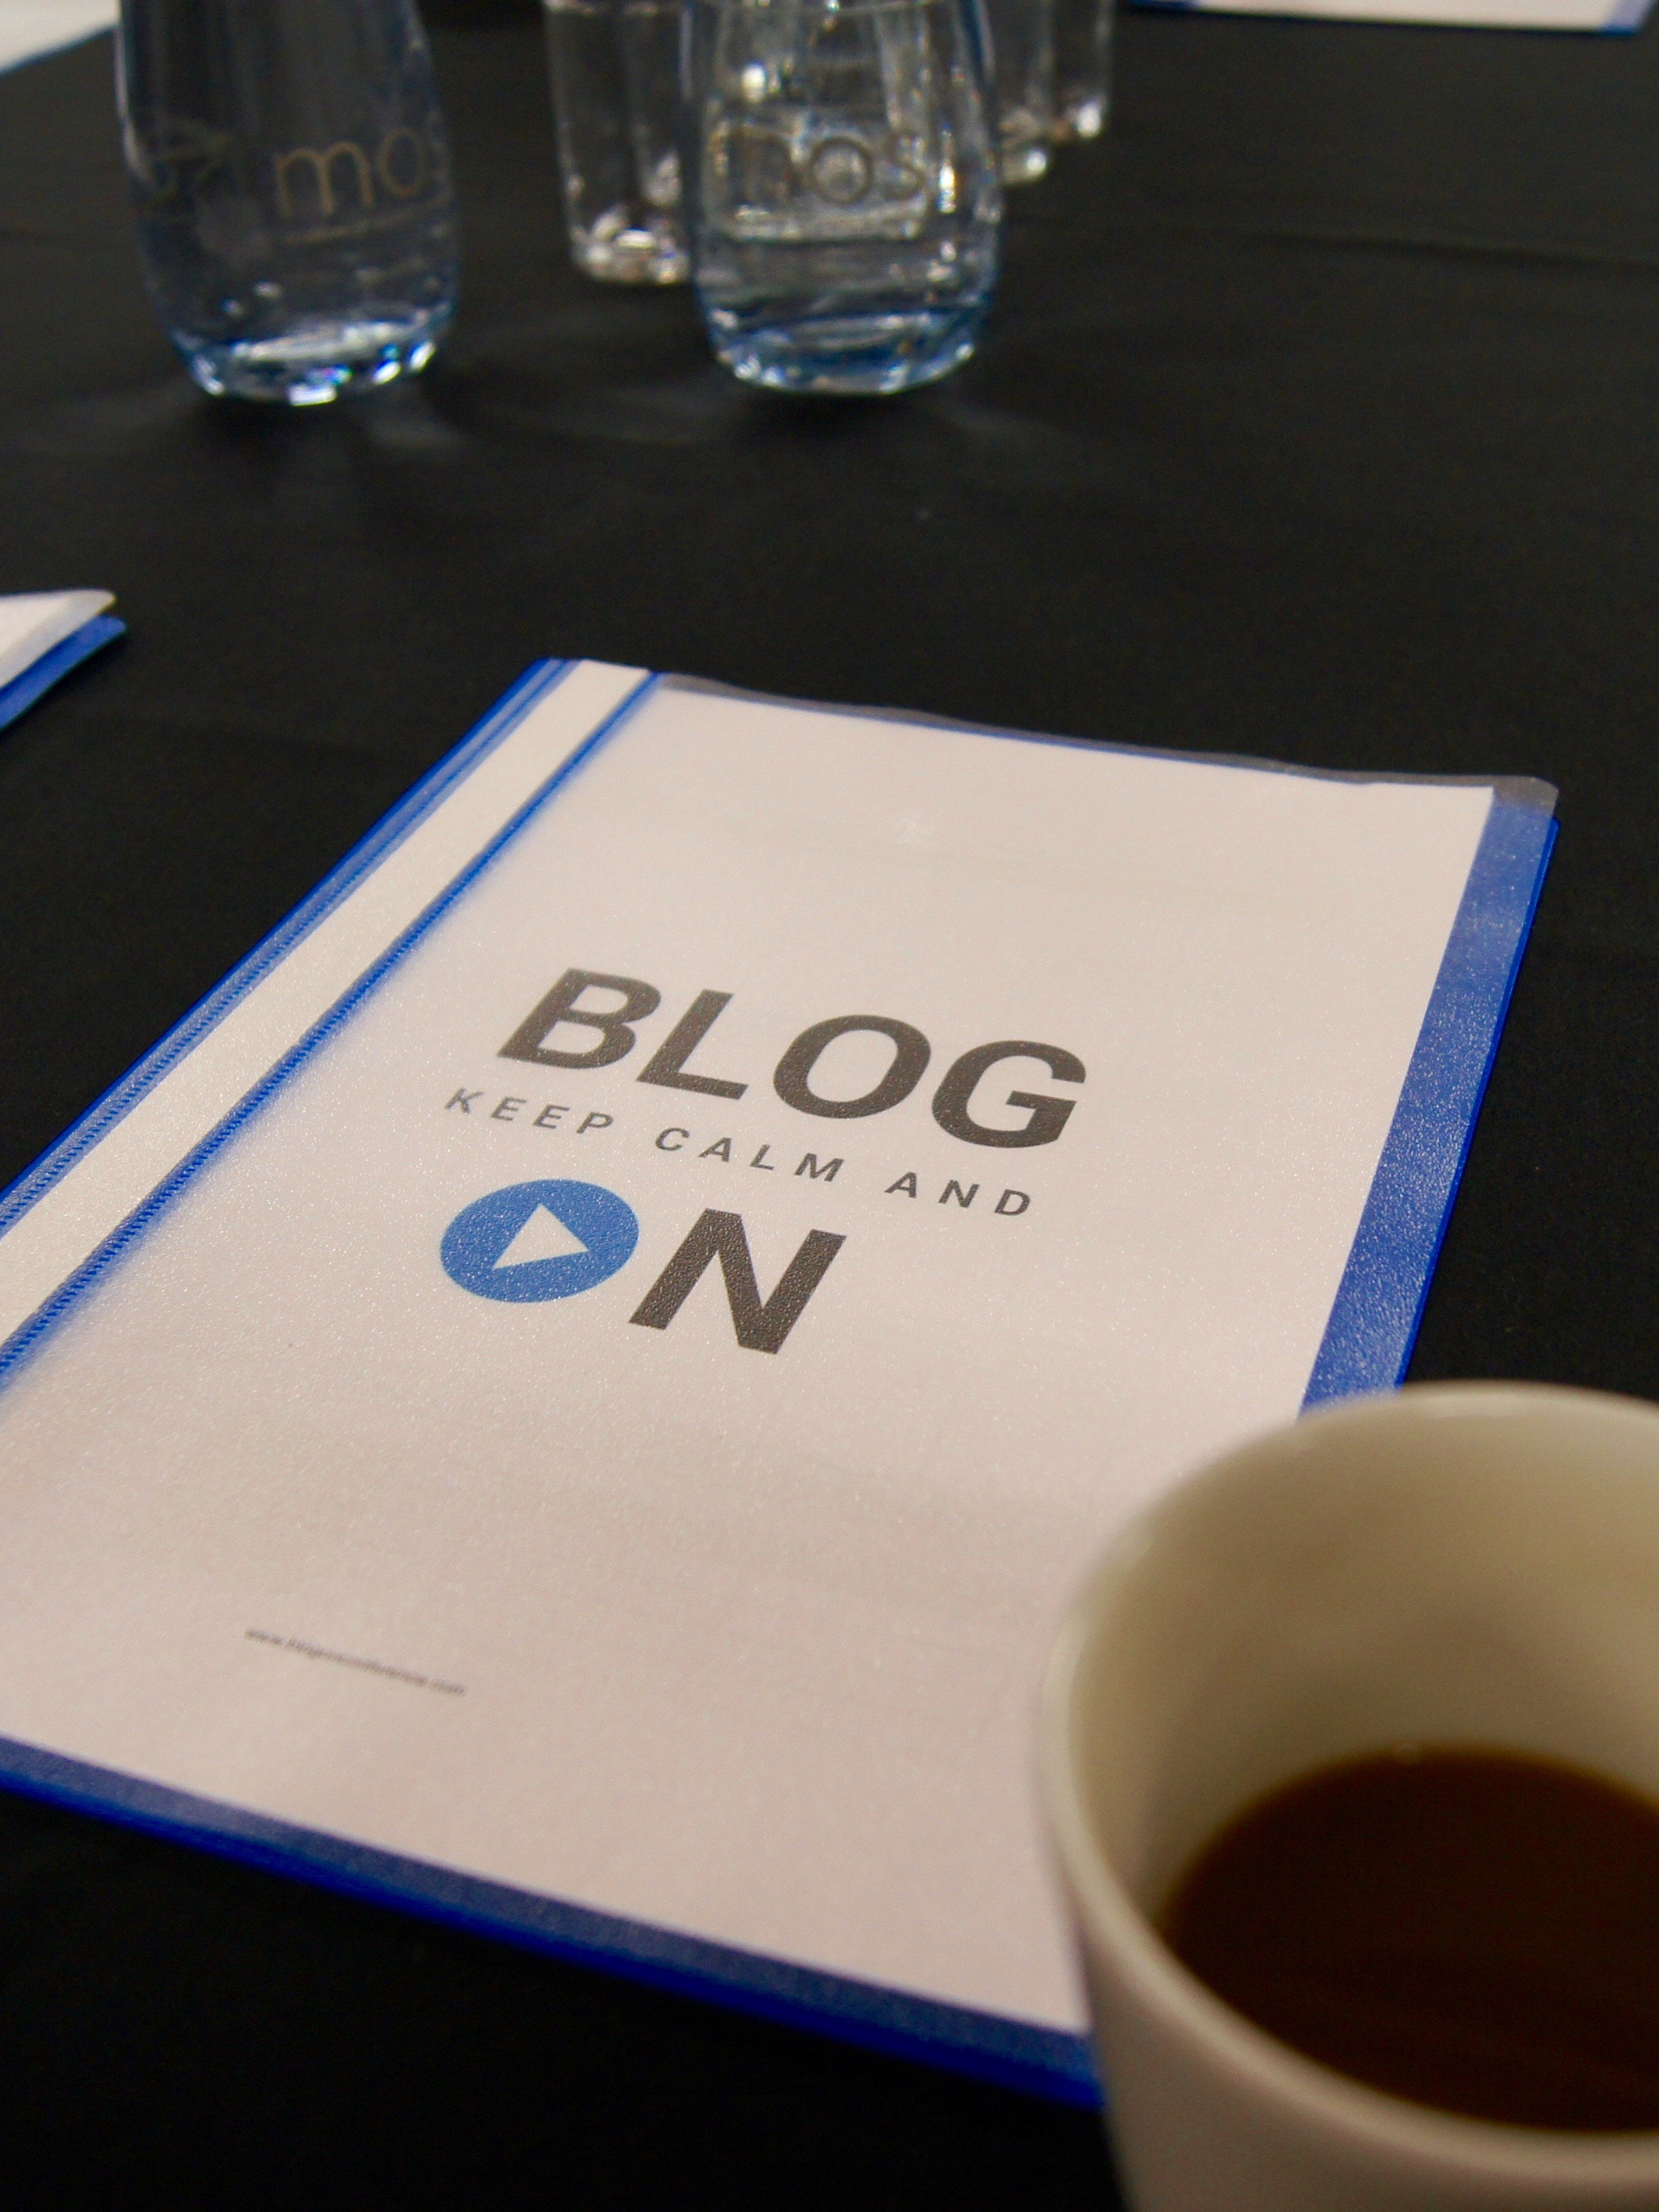 Blogging Conference: I went to Blog On Mosi